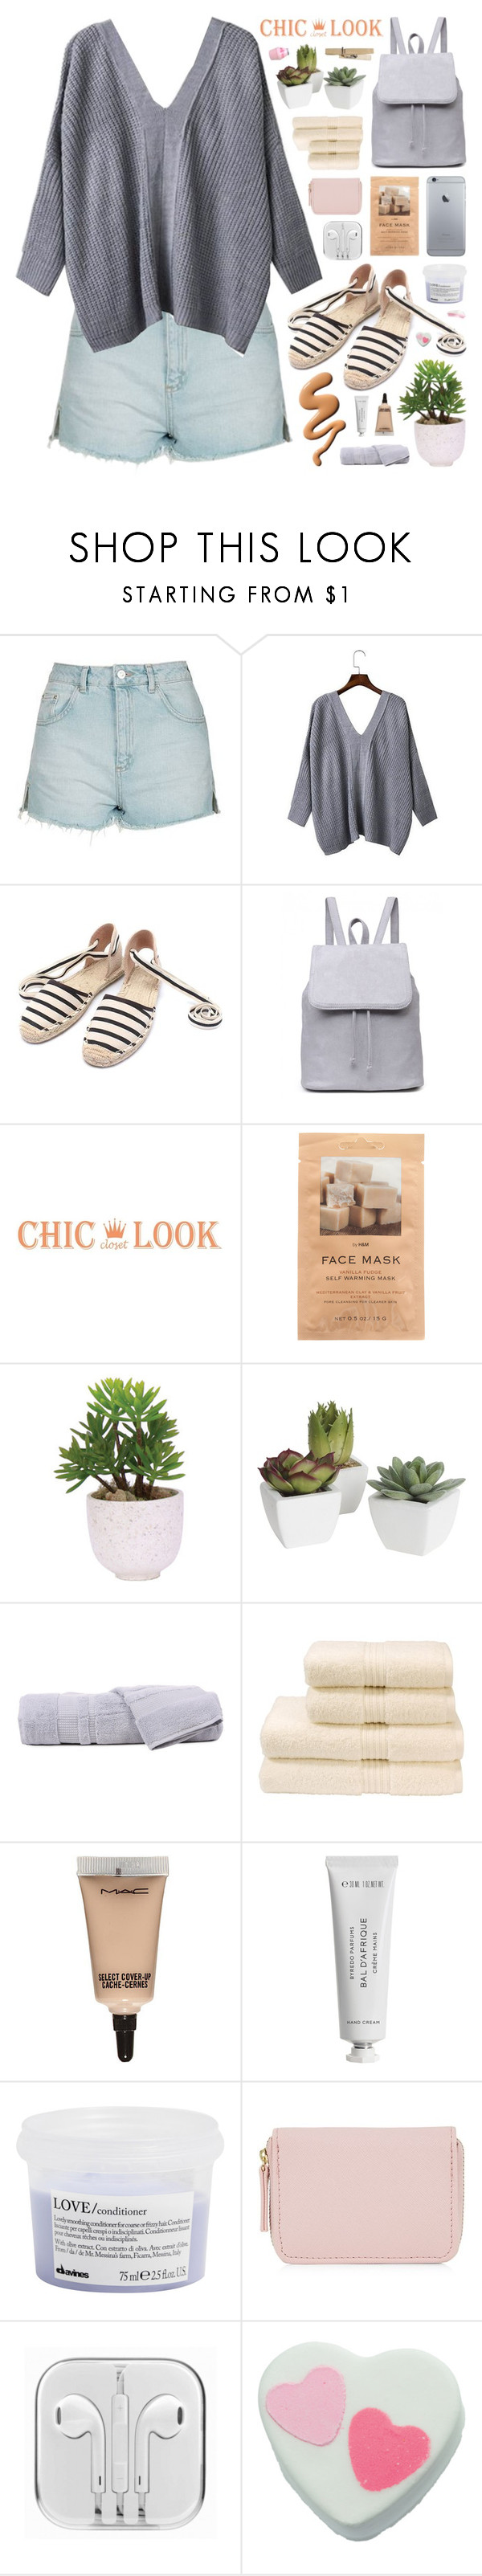 """CHIC LOOK CLOSET"" by novalikarida ❤ liked on Polyvore featuring Topshop, H&M, Lux-Art Silks, Pier 1 Imports, Hamam, Christy, MAC Cosmetics, Byredo, Davines and Tangle Teezer"